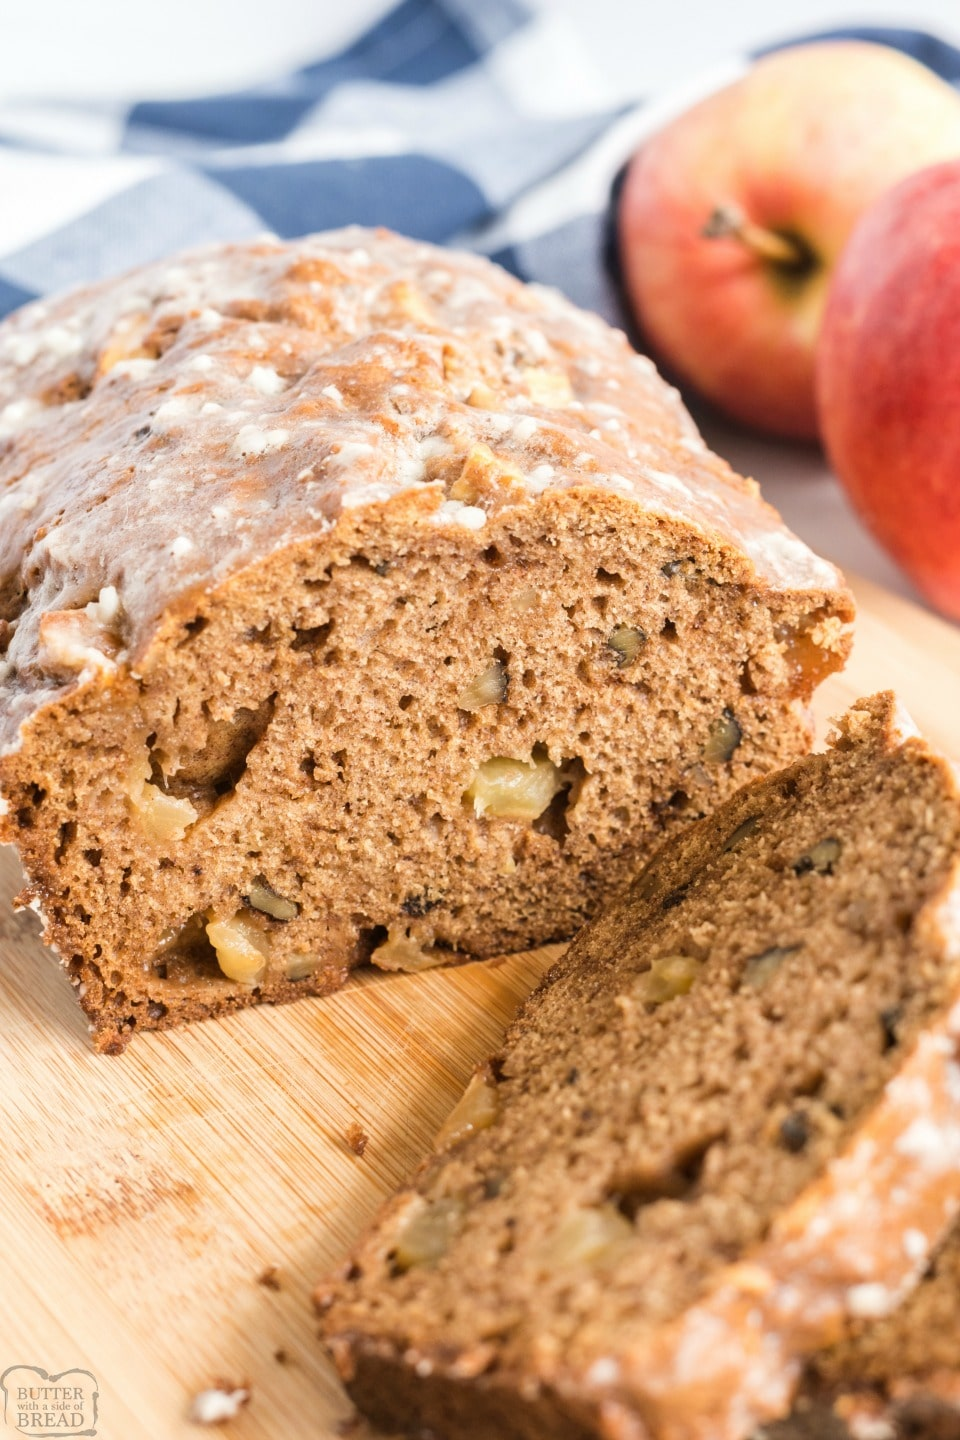 Glazed Apple Cinnamon bread made with fresh apple, cinnamon & brown sugar, then topped with a simple vanilla glaze. Easy quick bread recipe with fantastic apple cinnamon flavor.